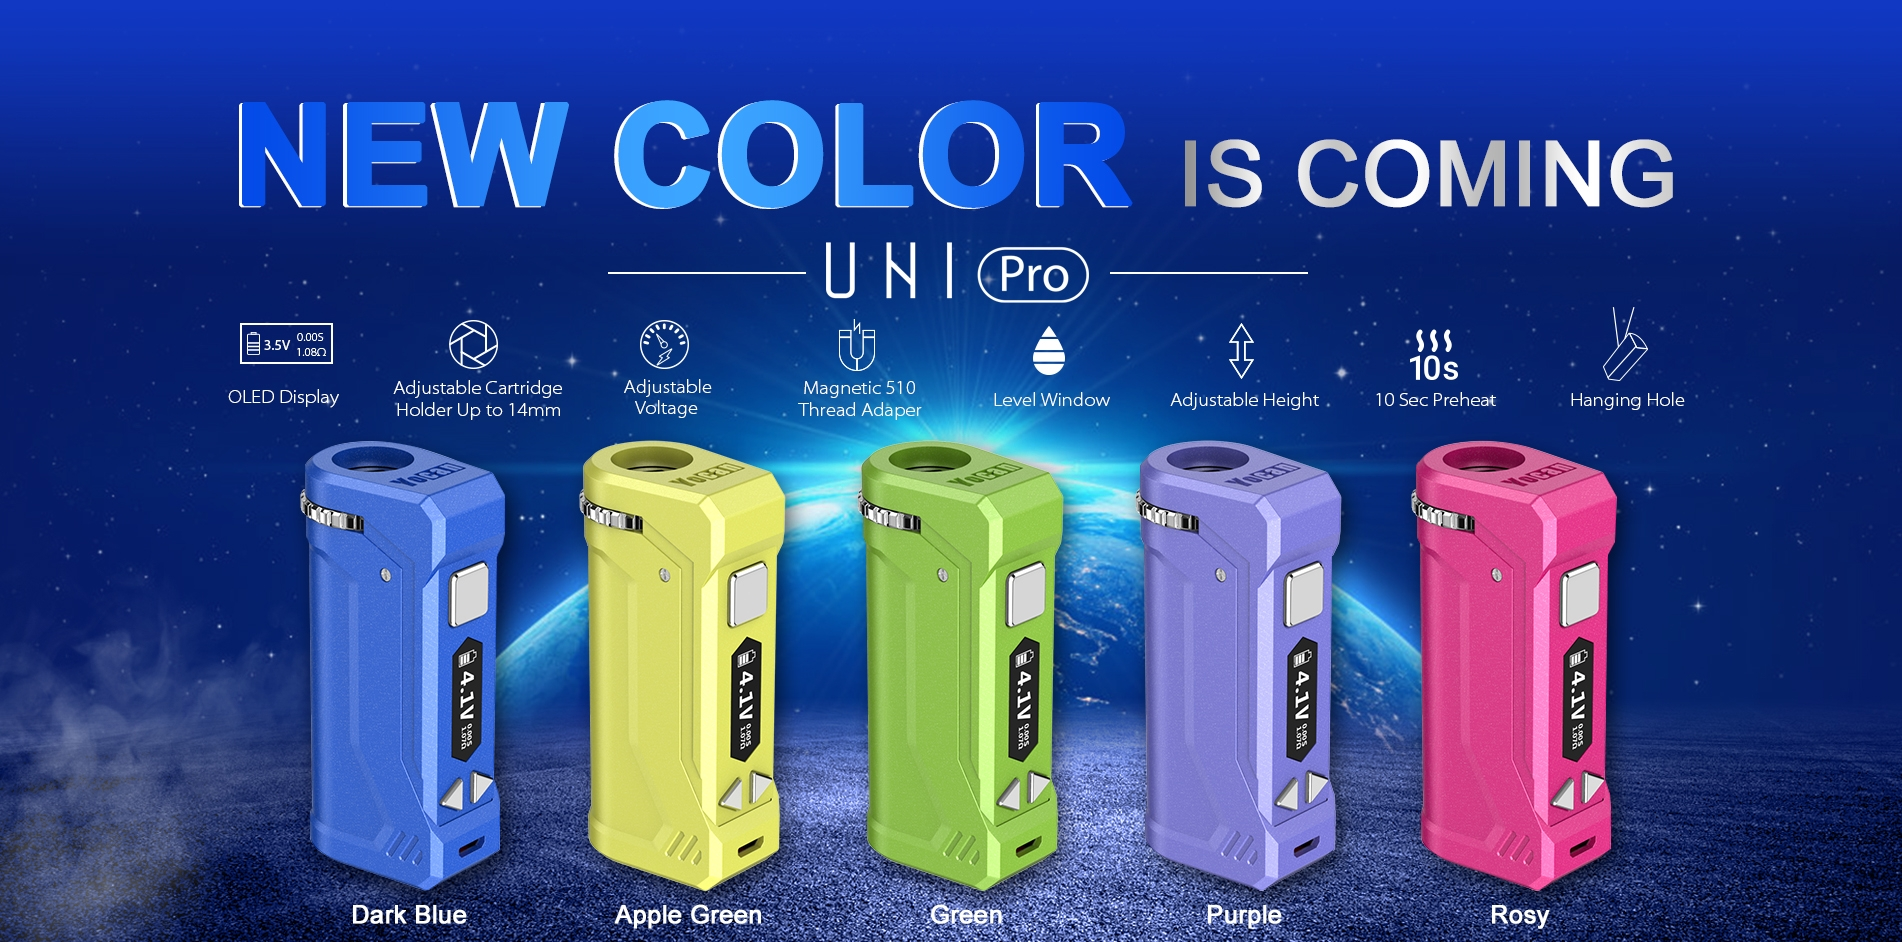 Yocan UNI Pro Box Mod Battery comes with 5 new colors